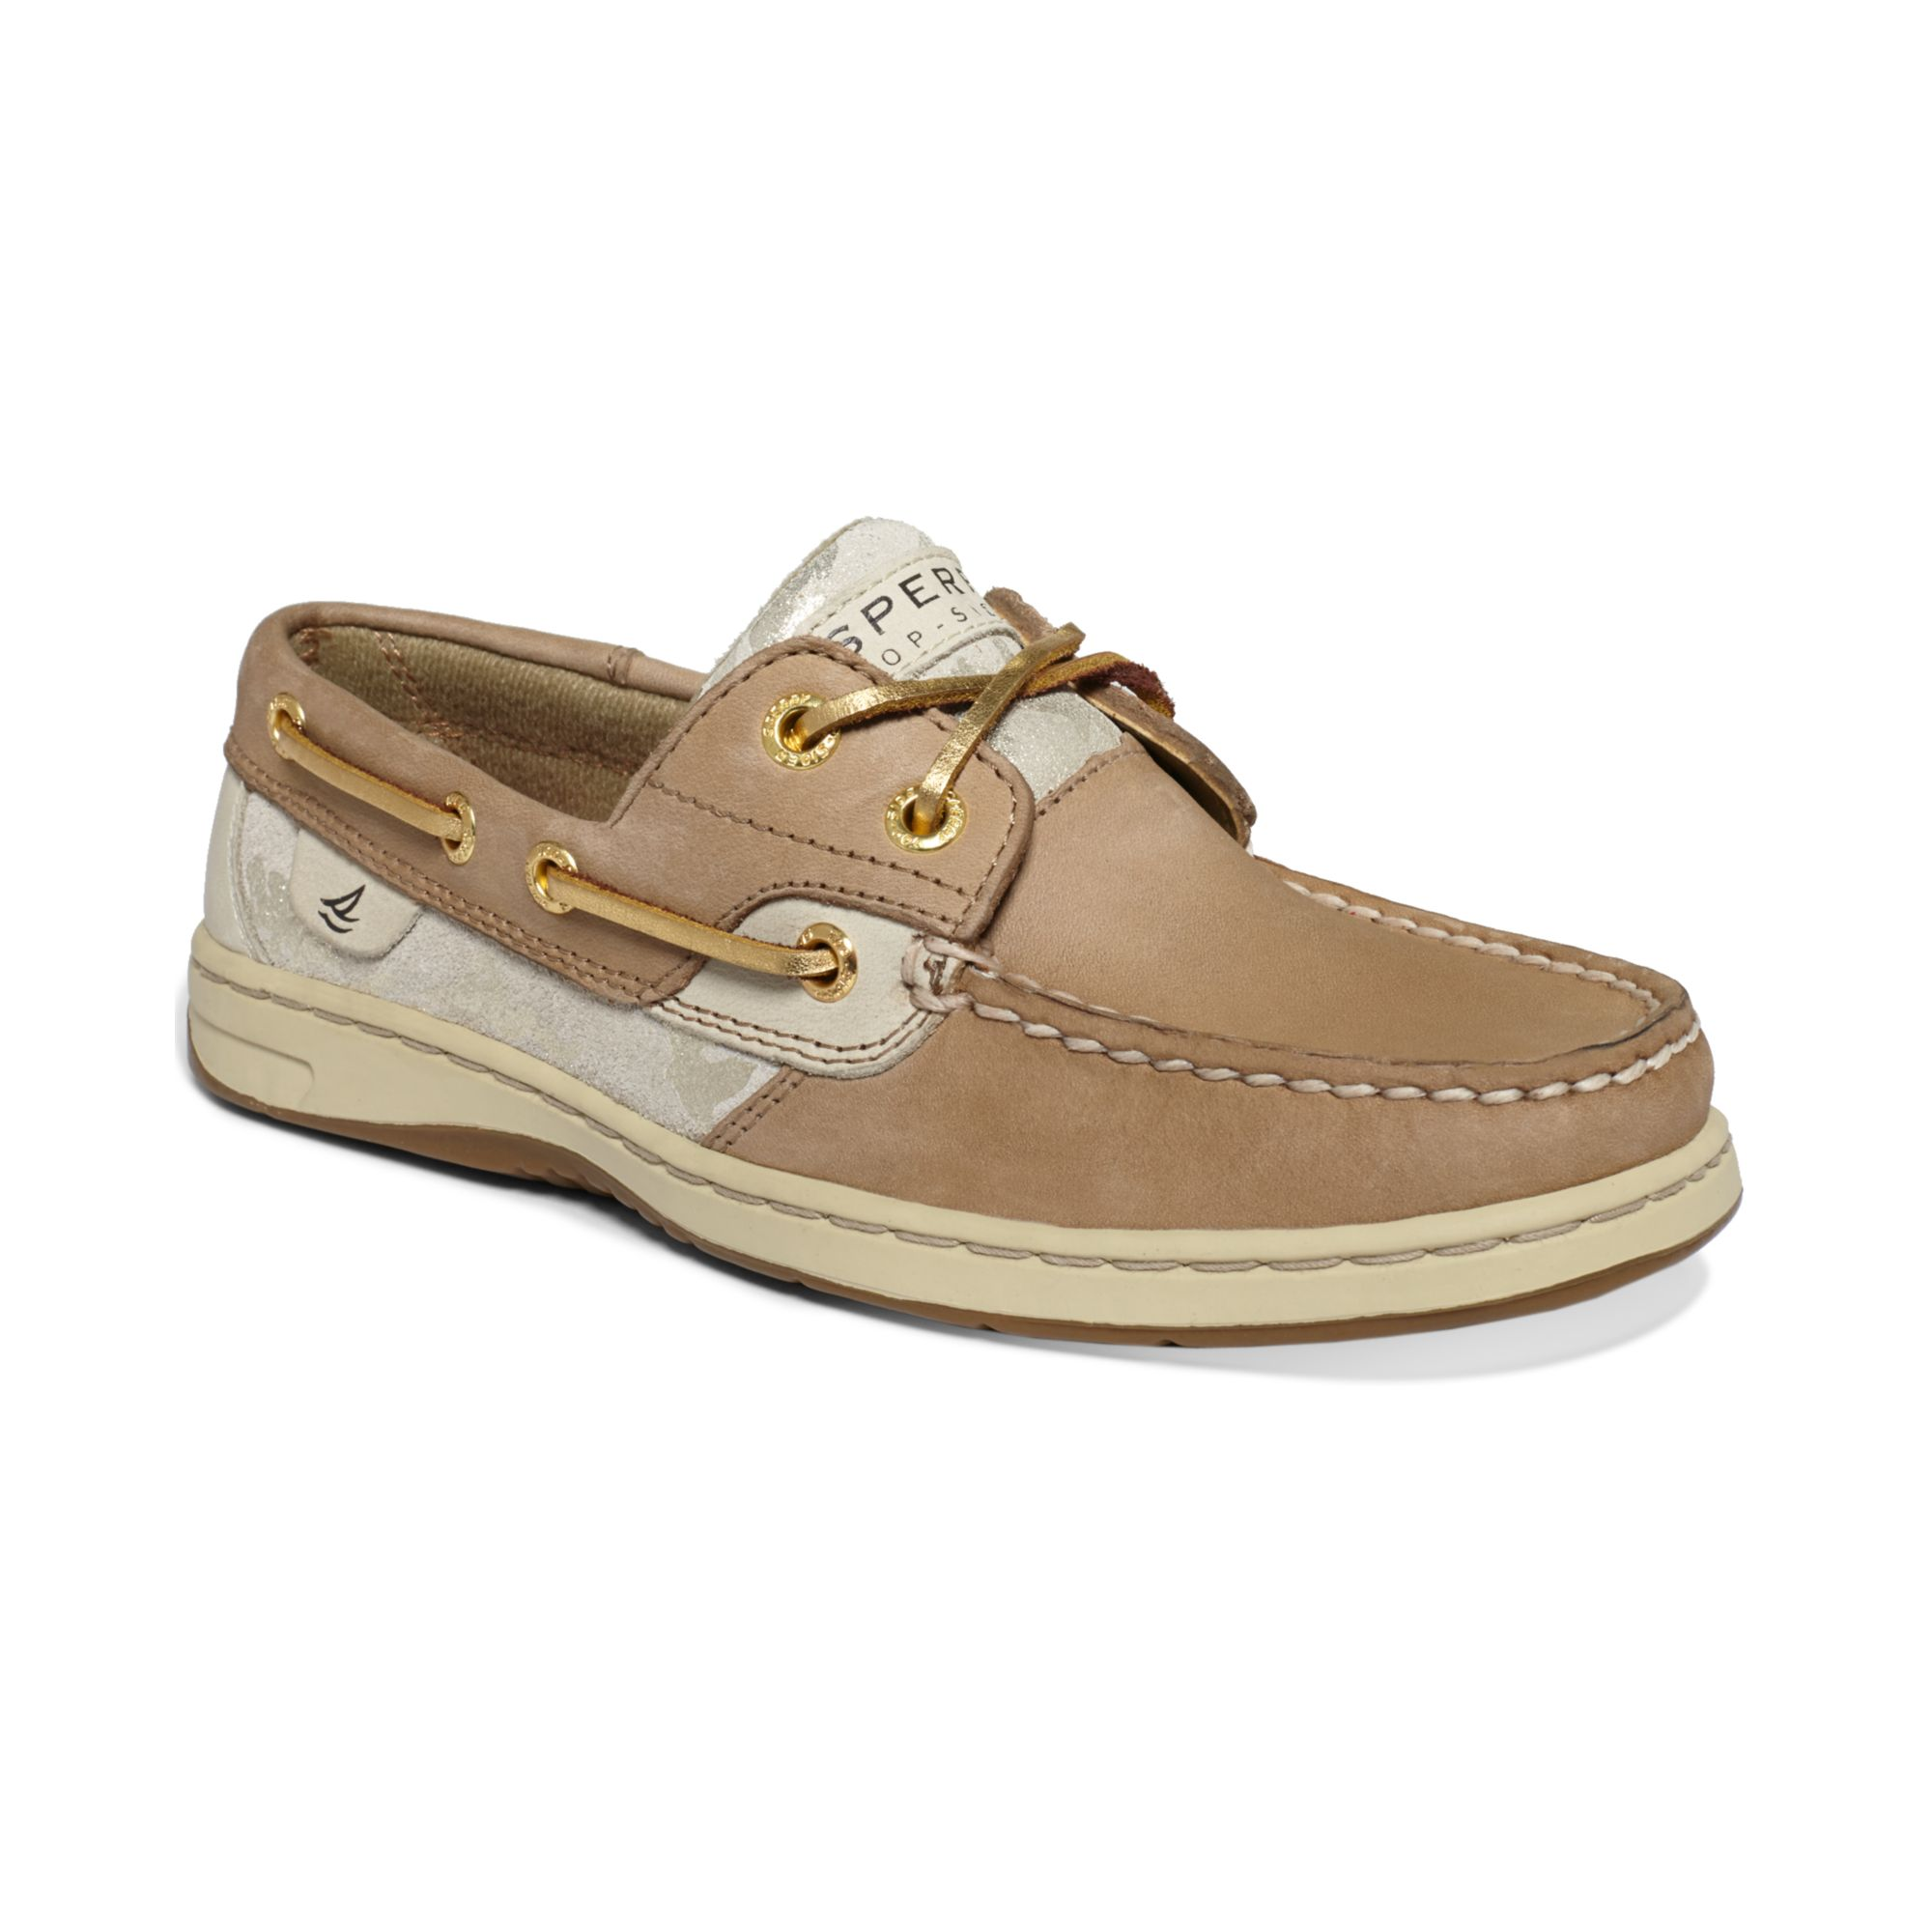 sperry top sider bluefish boat shoes in brown linen gold